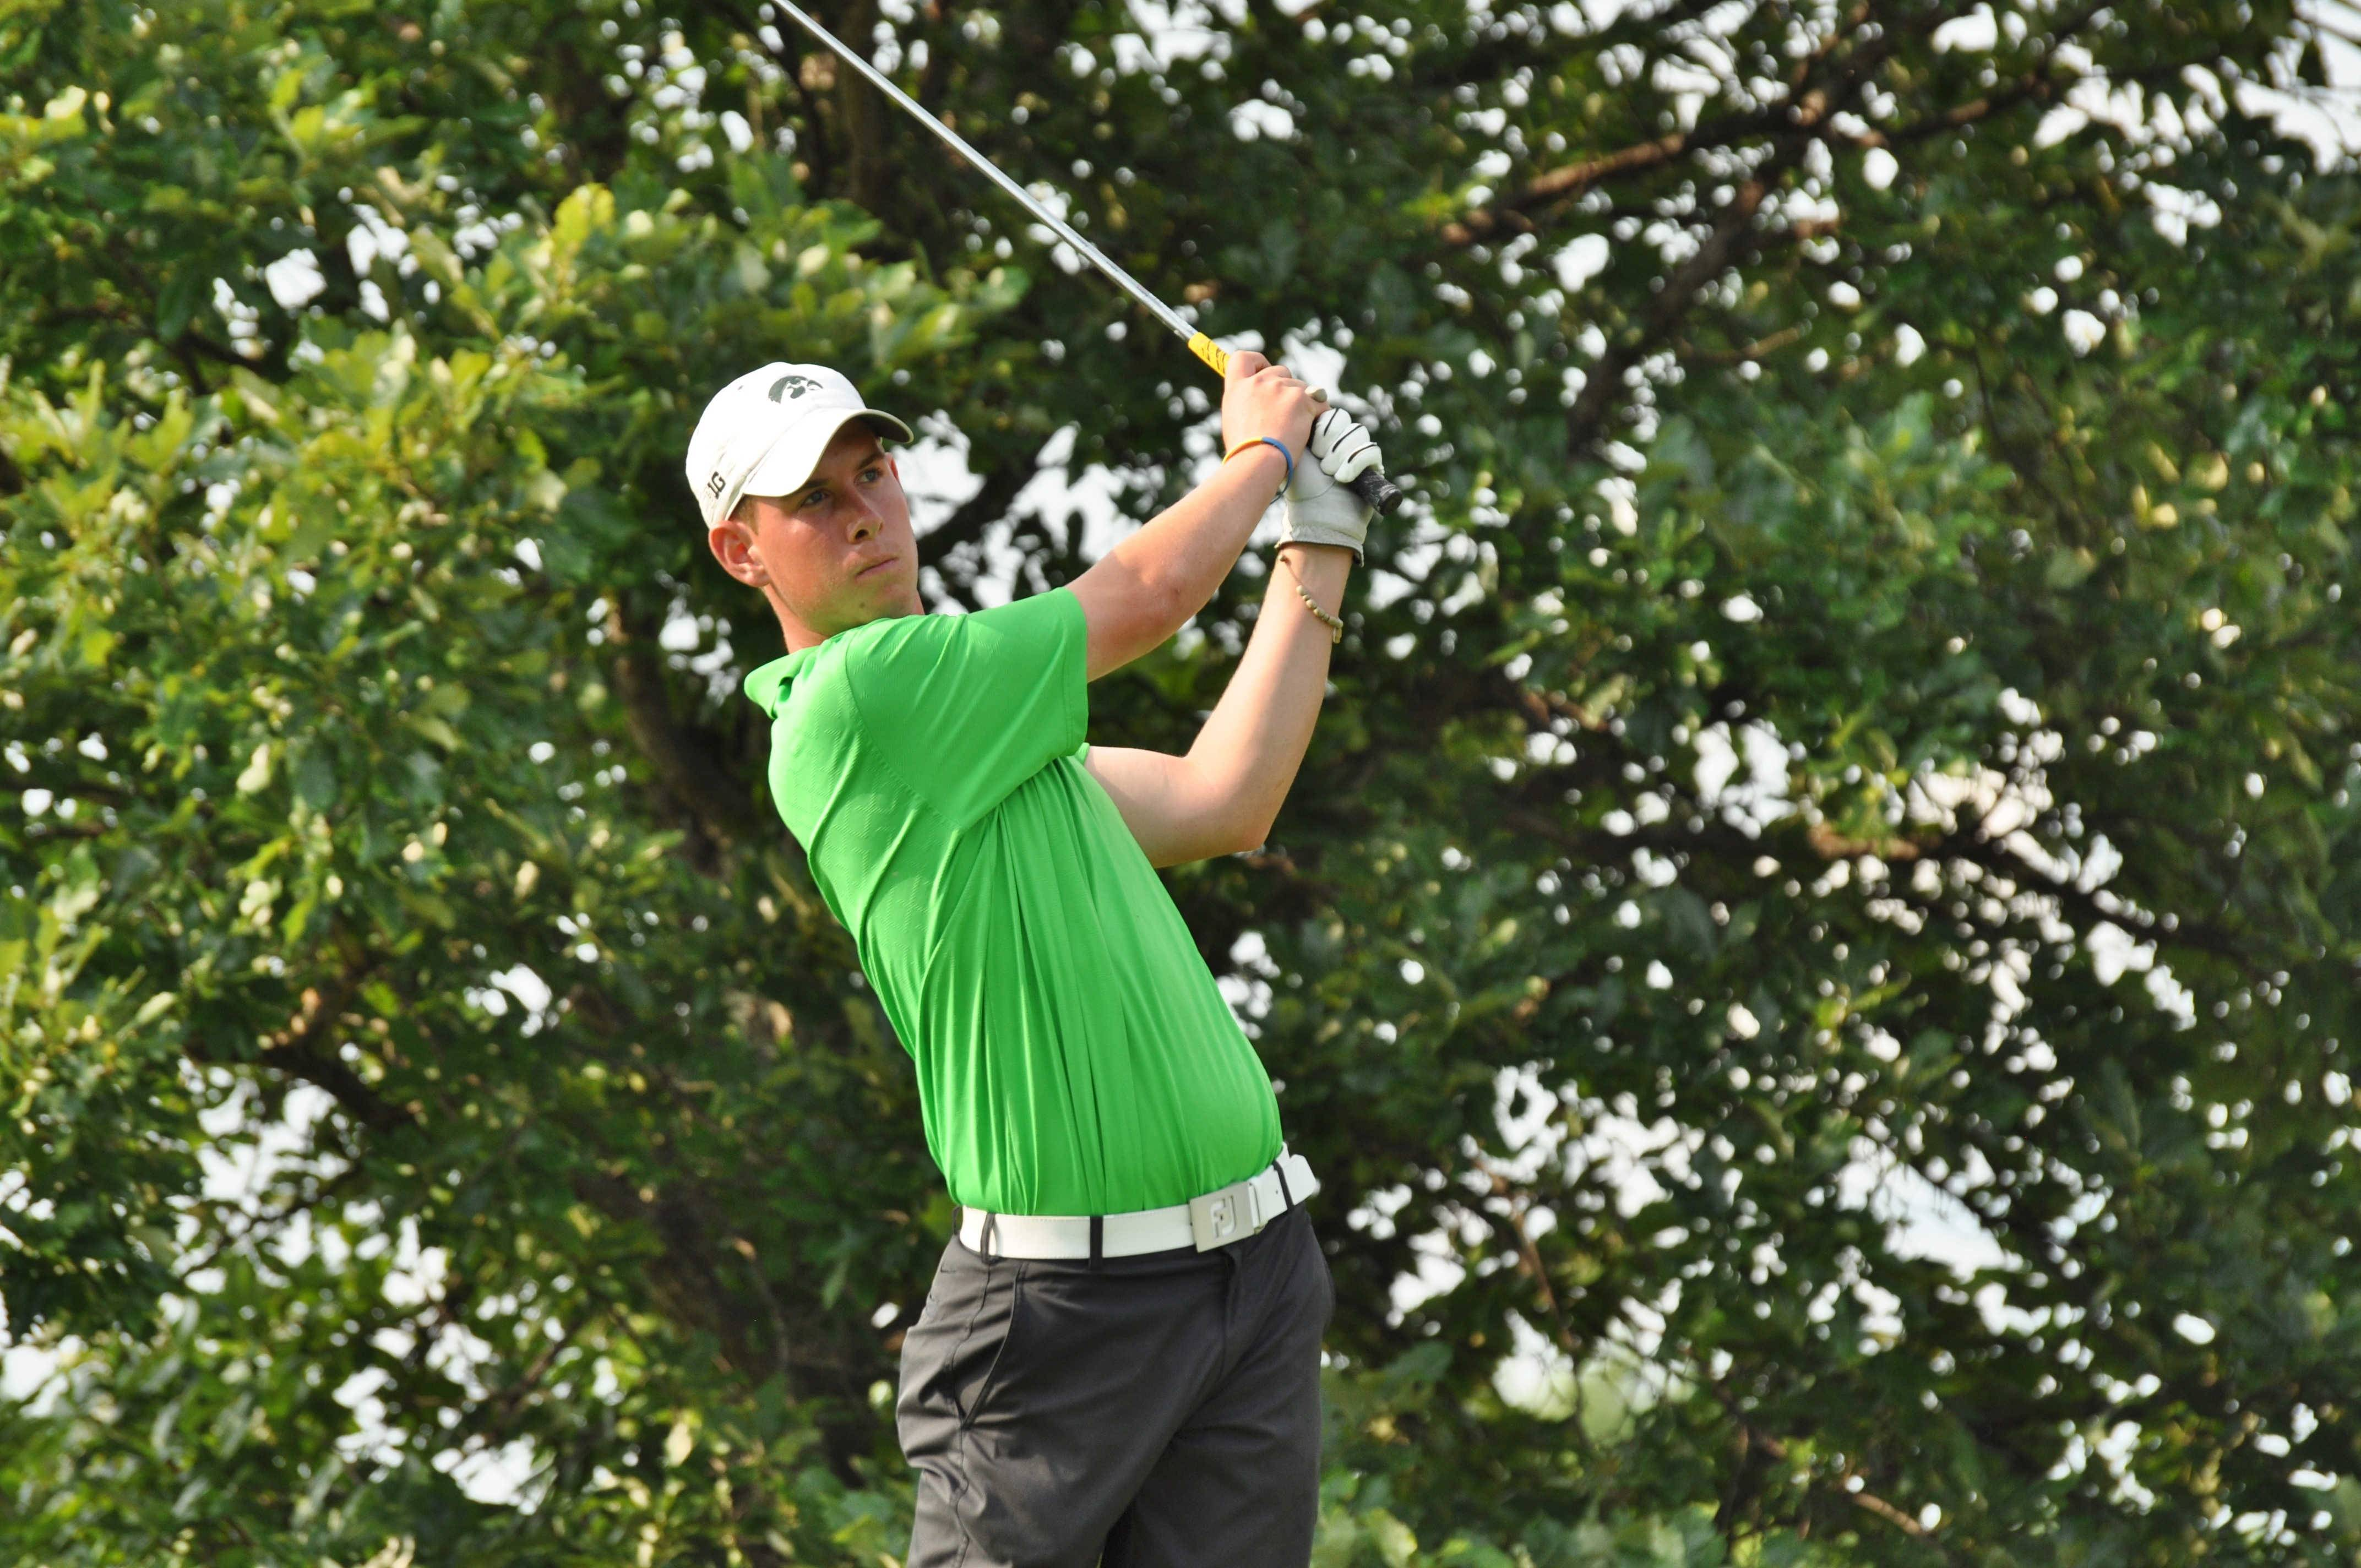 Ray Knoll of Naperville won the 84th Illinois State Amateur championship in a four-hole playoff Thursday at Catigny in Wheaton.